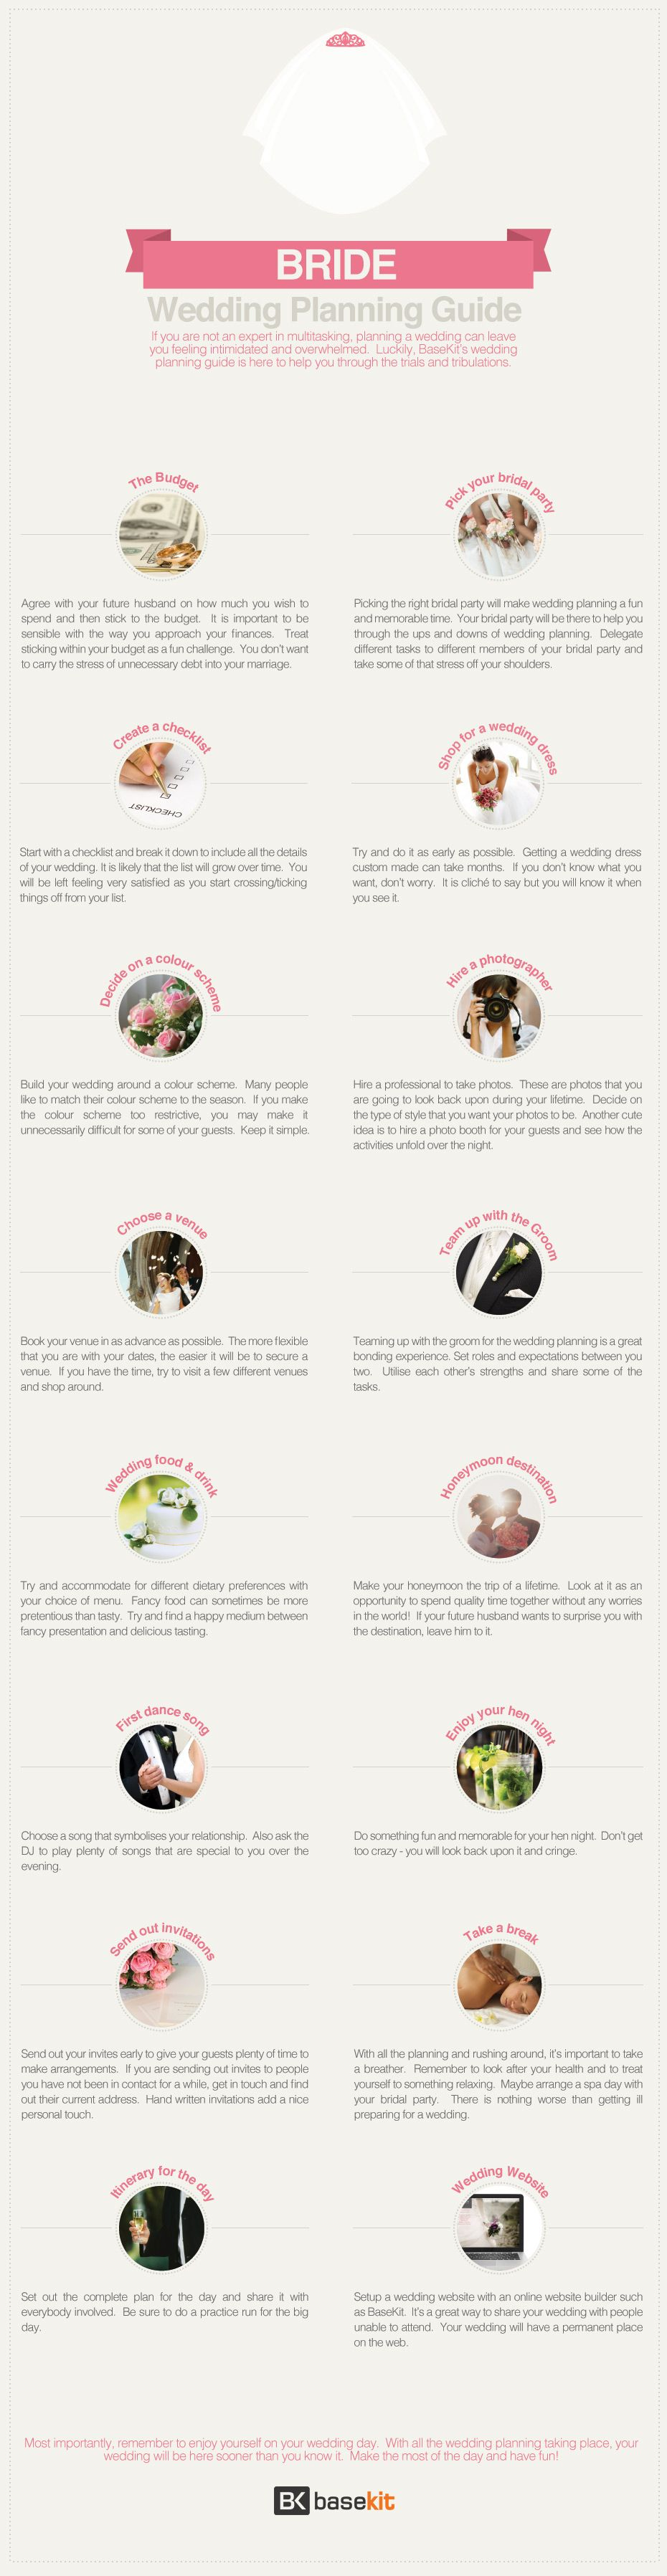 Brides checklist It covers everything from choosing your wedding